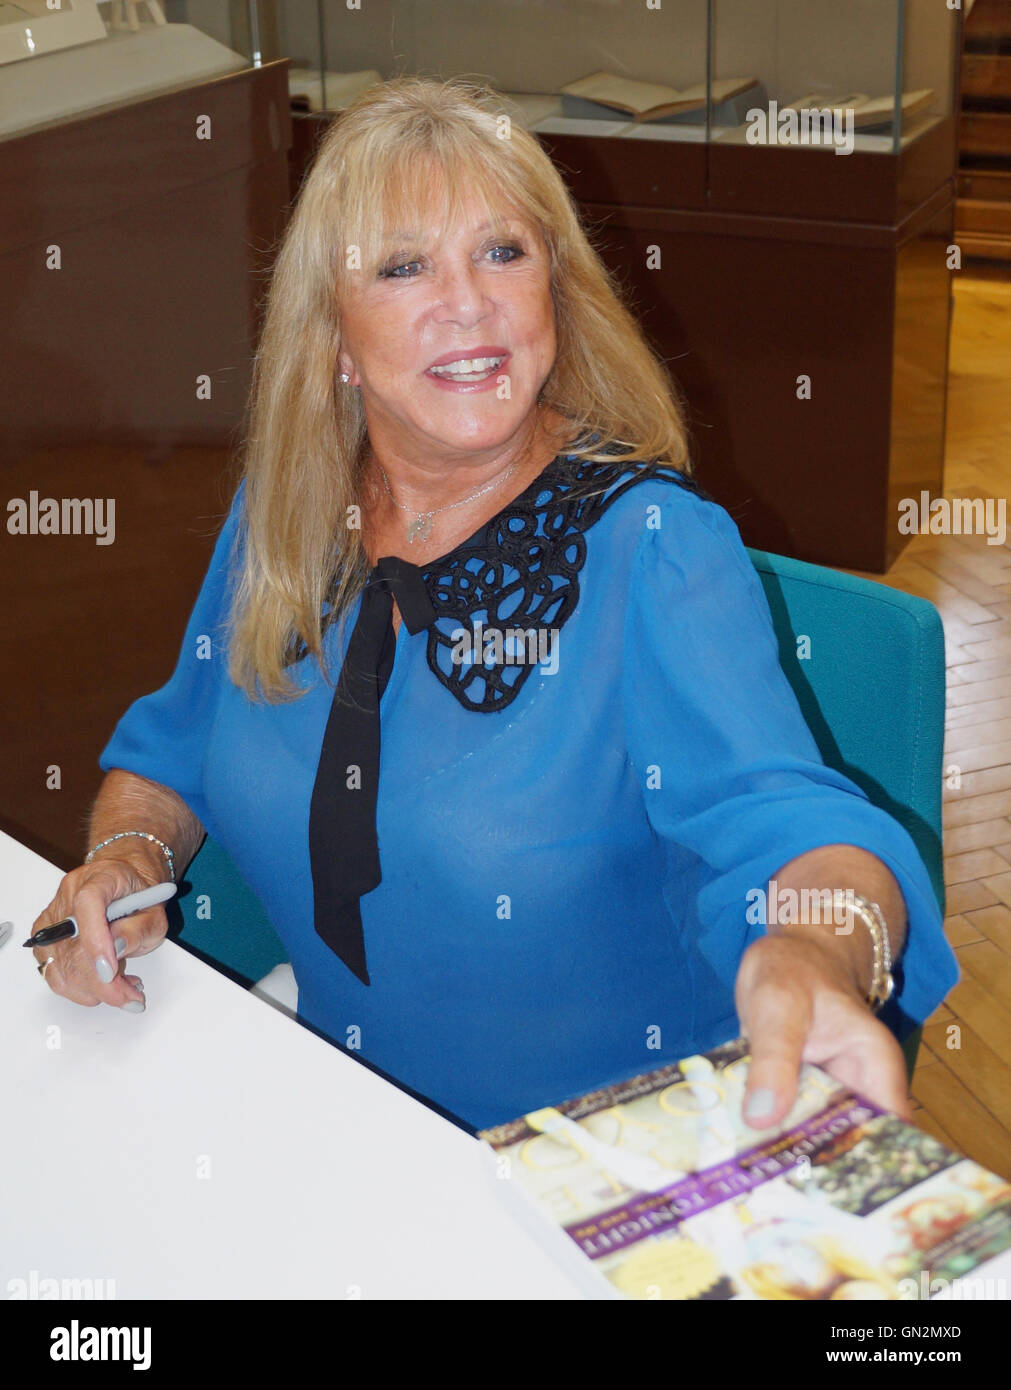 Liverpool, UK. 27th August, 2016. Pattie Boyd signed copies of her autobiography 'Wonderful Tonight' at - Stock Image